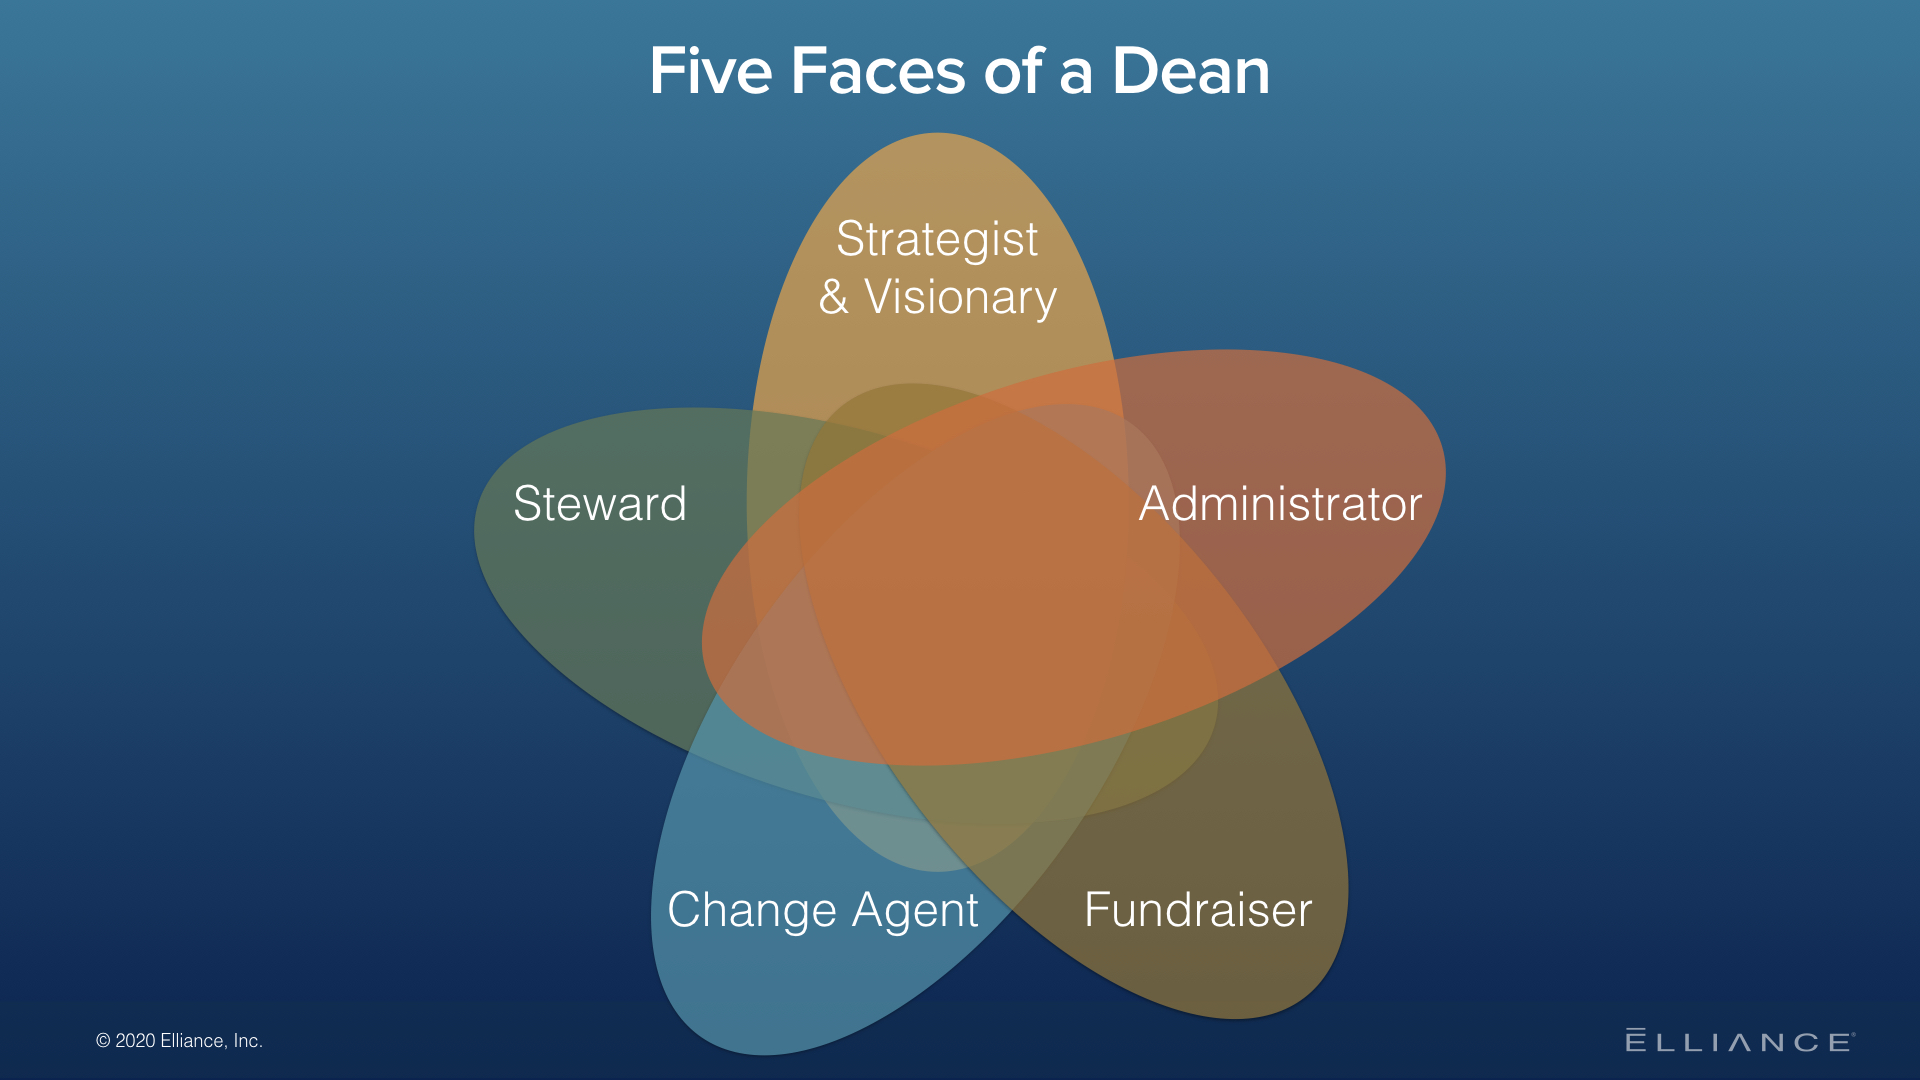 Five Faces of a Dean